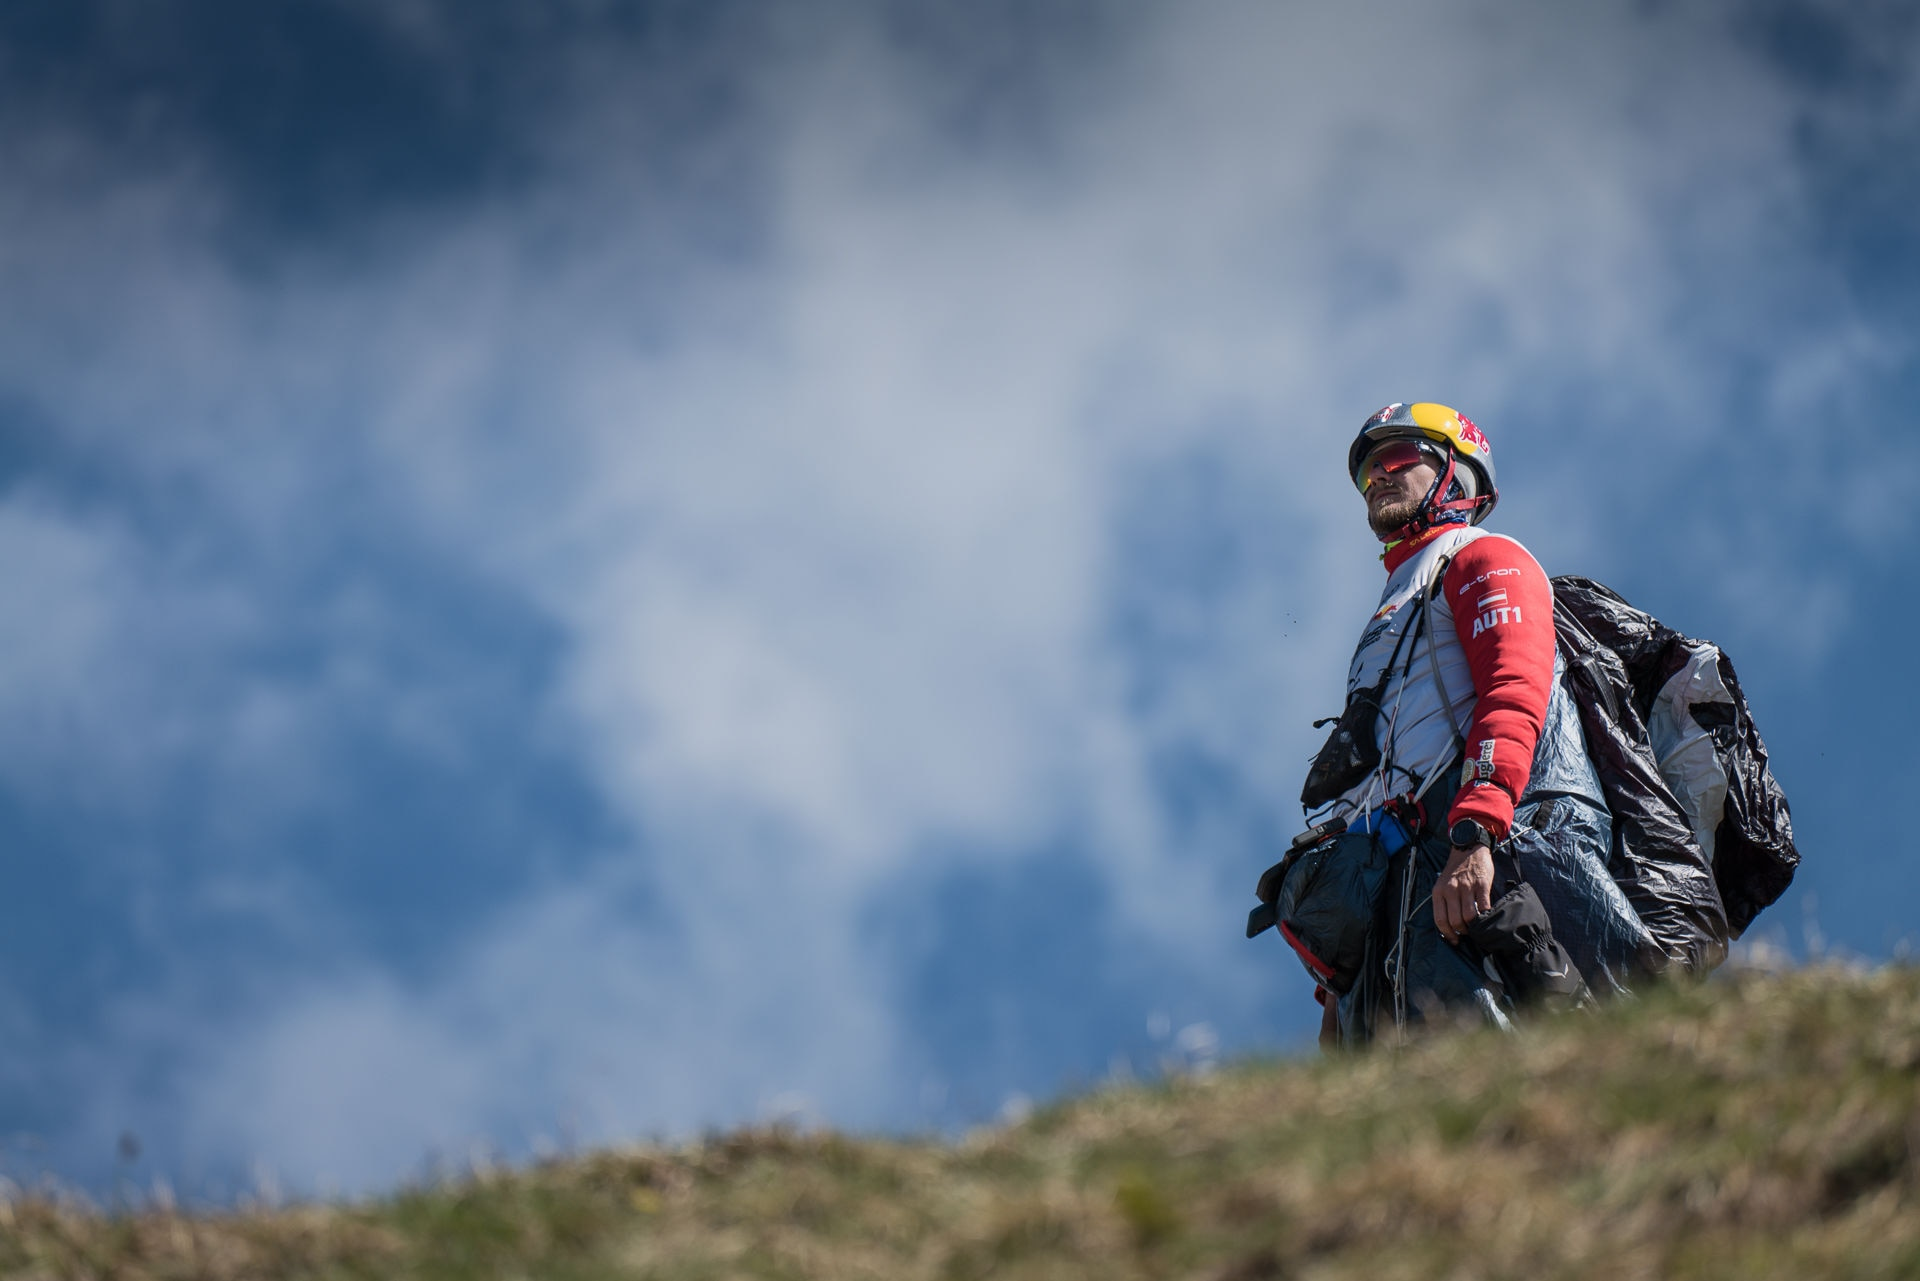 Paul Guschlbauer checking the weather conditions before his take off to the next Red Bull X-Alps turnpoint, June 19, 2019 // Philipp Reiter / Red Bull Content Pool // SI201906190309 // Usage for editorial use only //